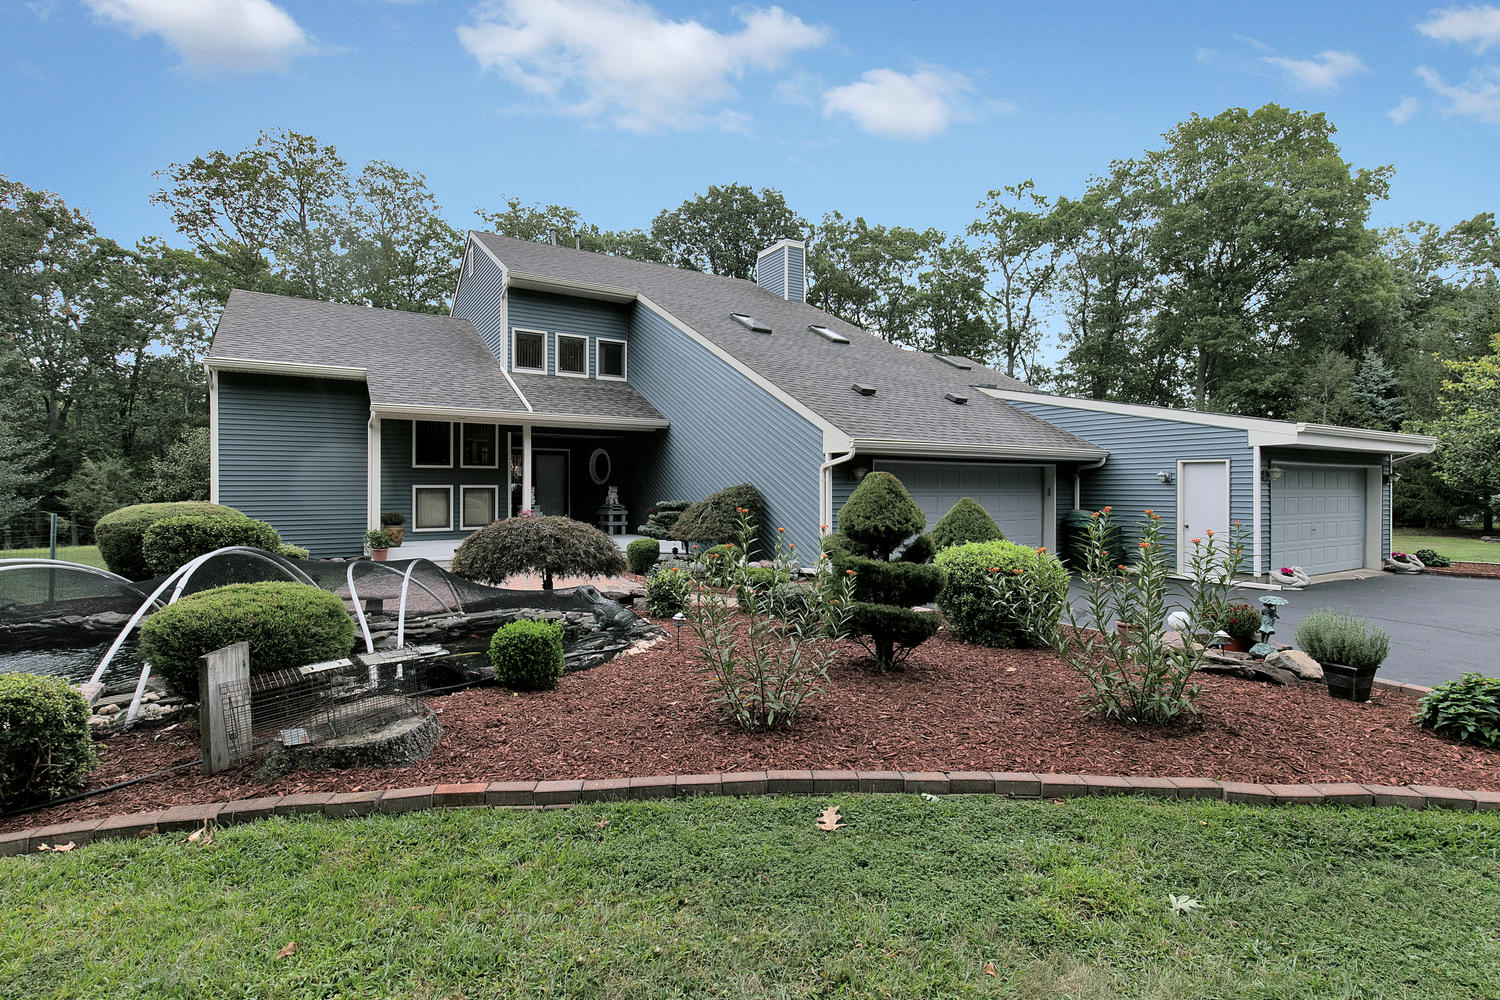 Single Family Home for Sale at Unique Offering in Wall! 2133 Old Mill Road Wall, New Jersey 07719 United States